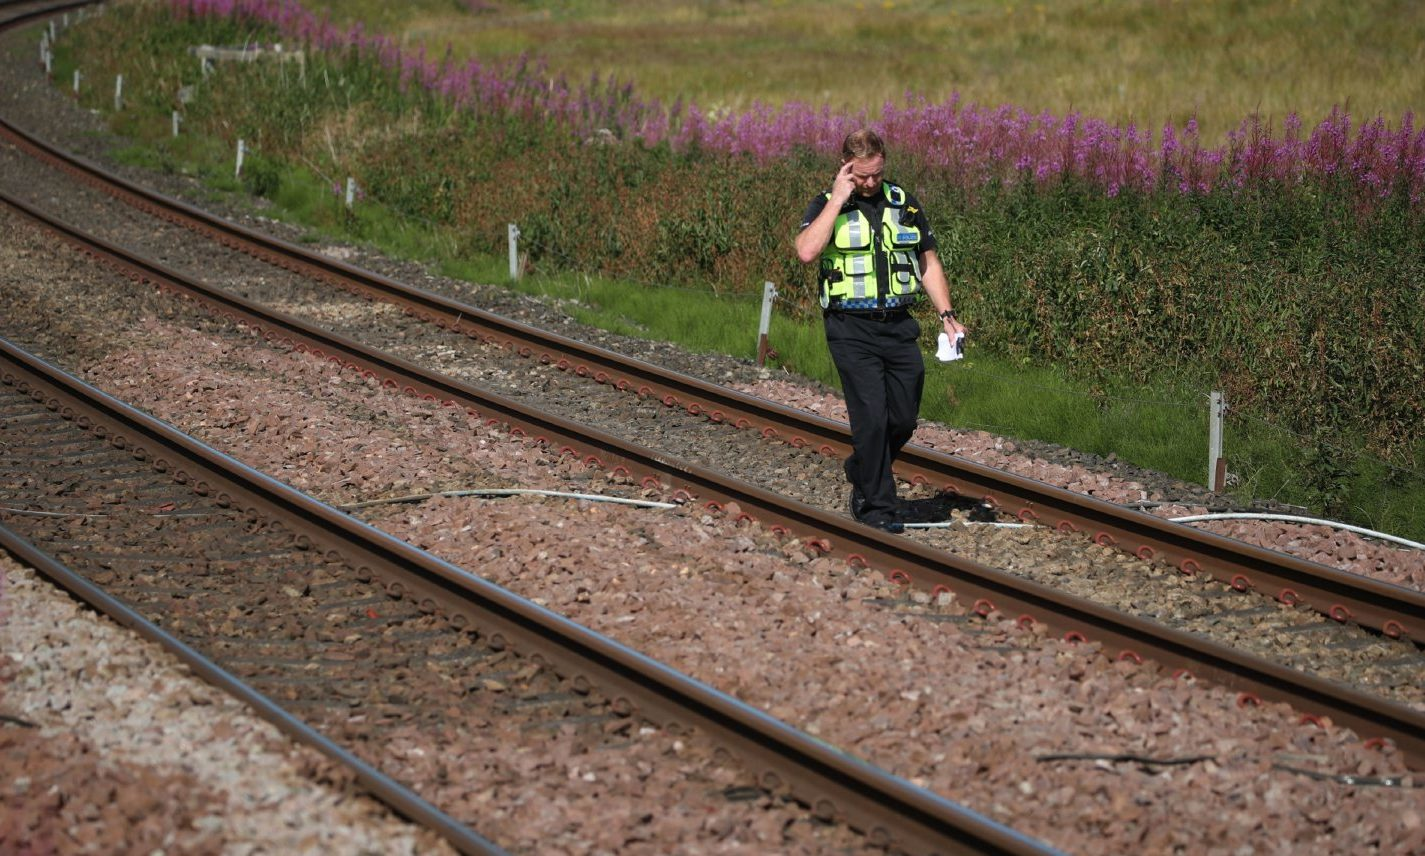 A police officer walks along the tracks at Carmont crossing on the train of the tragedy.